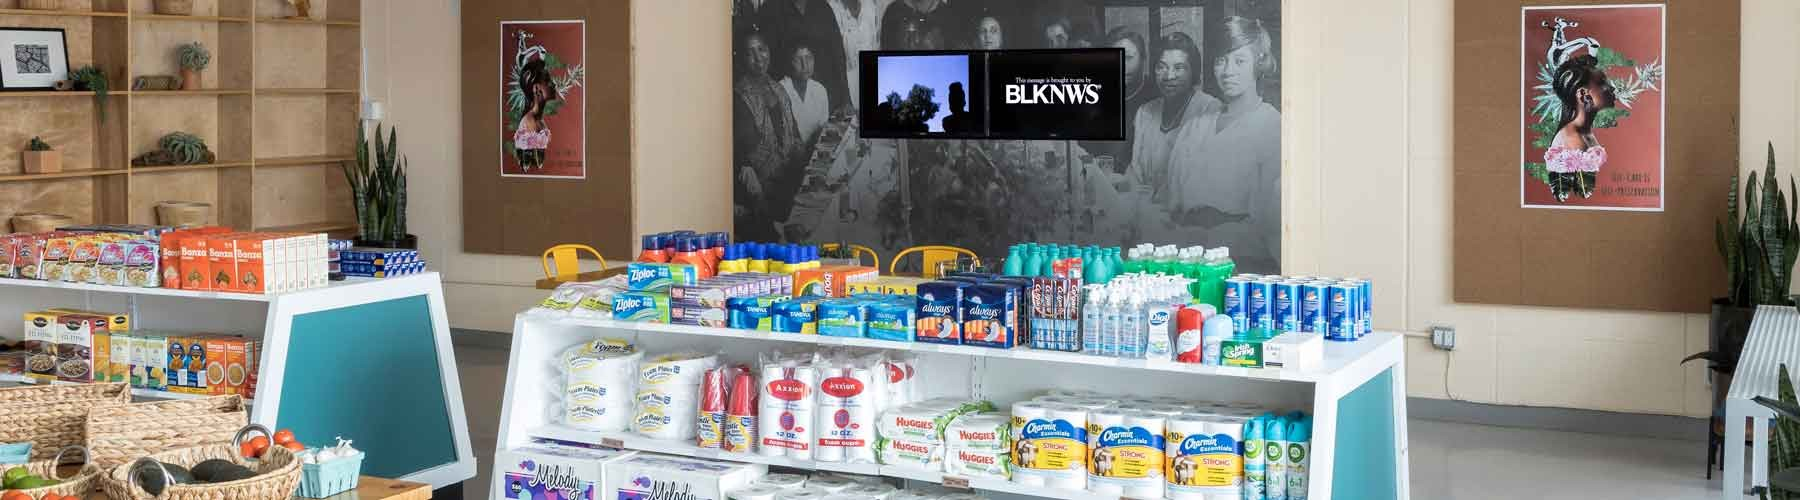 Kahlil Joseph, BLKNWS®, 2018—ongoing. Two-channel fugitive newscast. Made in L.A. 2020: a version. Installation view at Hank's Mini Market. Photo: Jeff McLane.